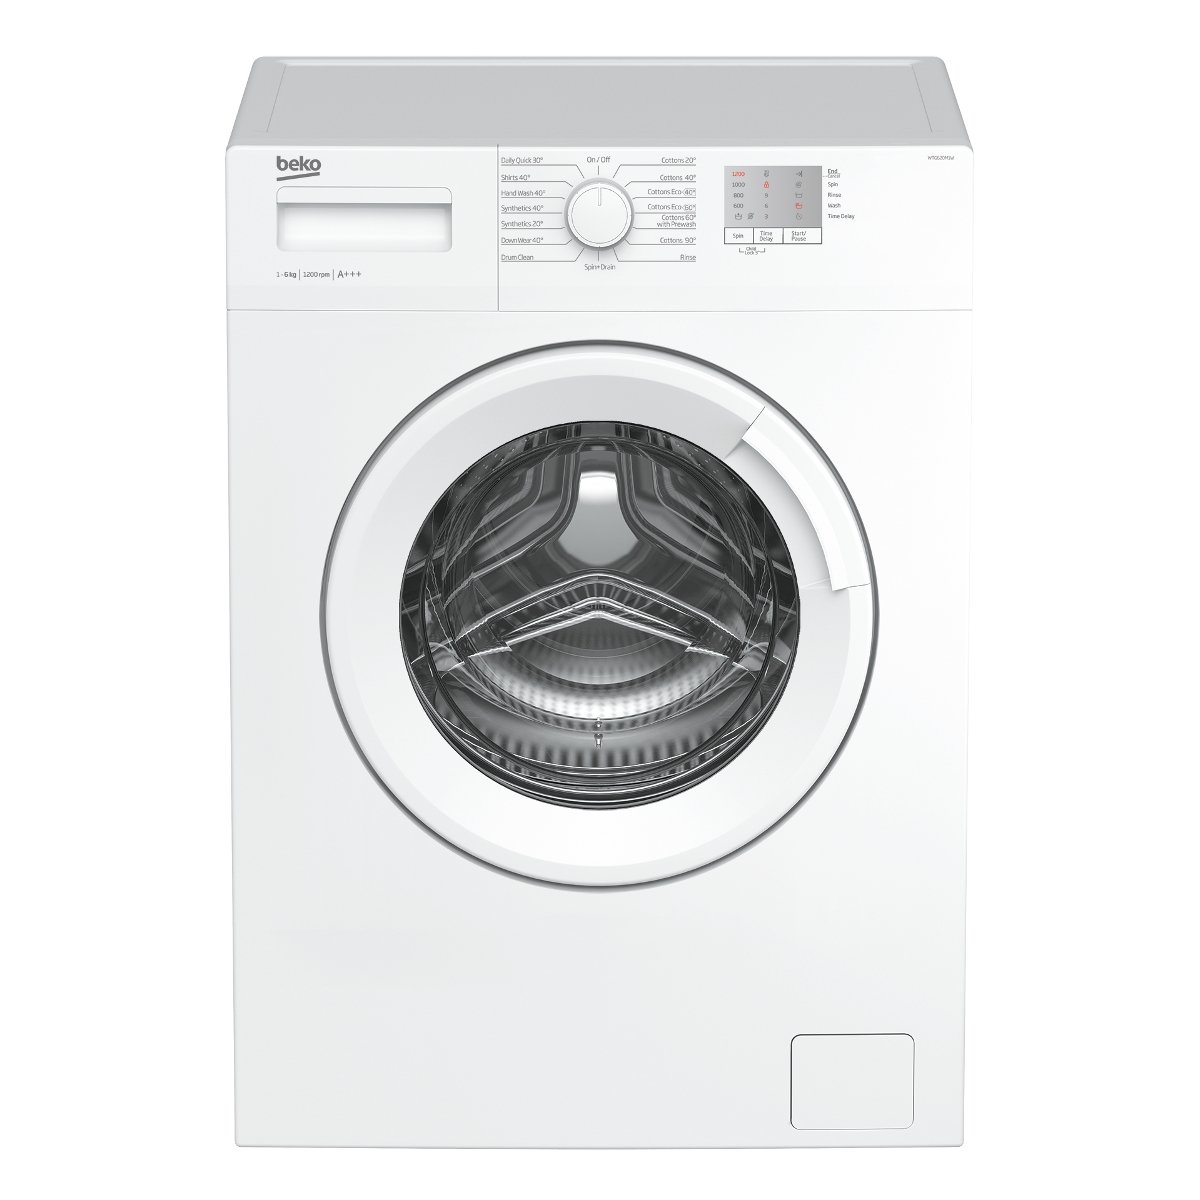 Beko WTG620M1W 6kg 1200rpm Freestanding Washing Machine - White [Energy Class A+++]